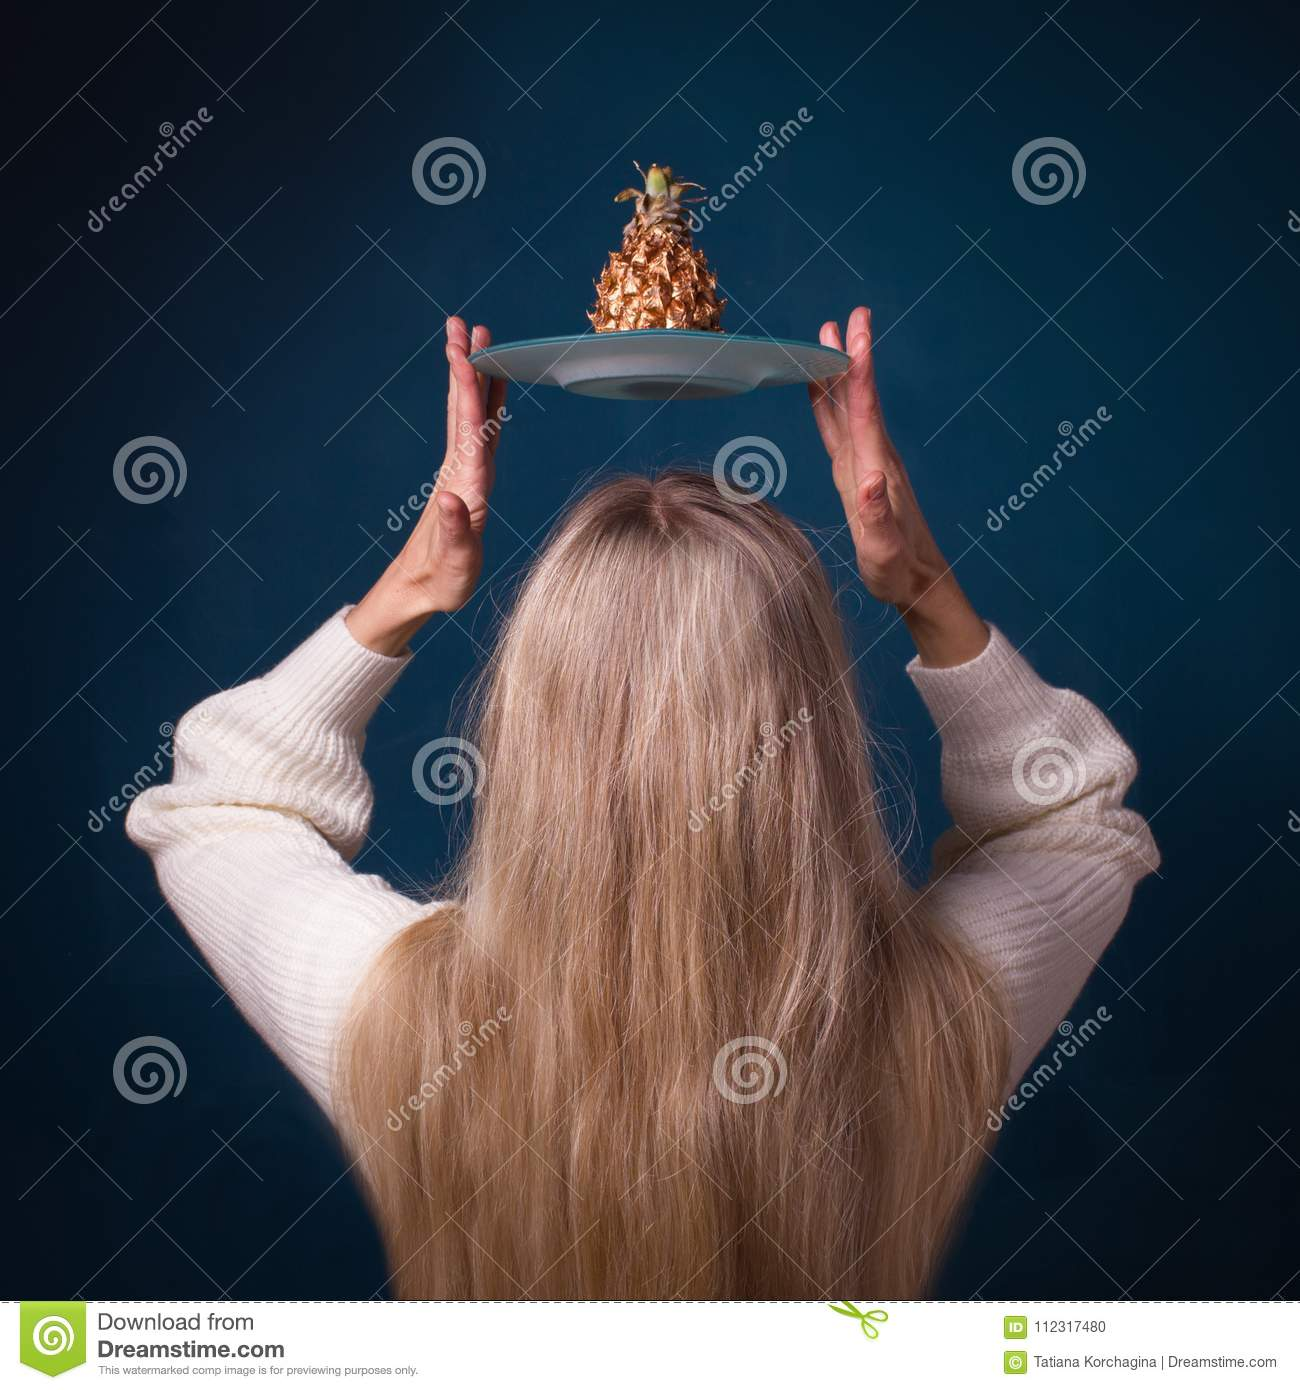 Golden pineapple fruit above the head of woman